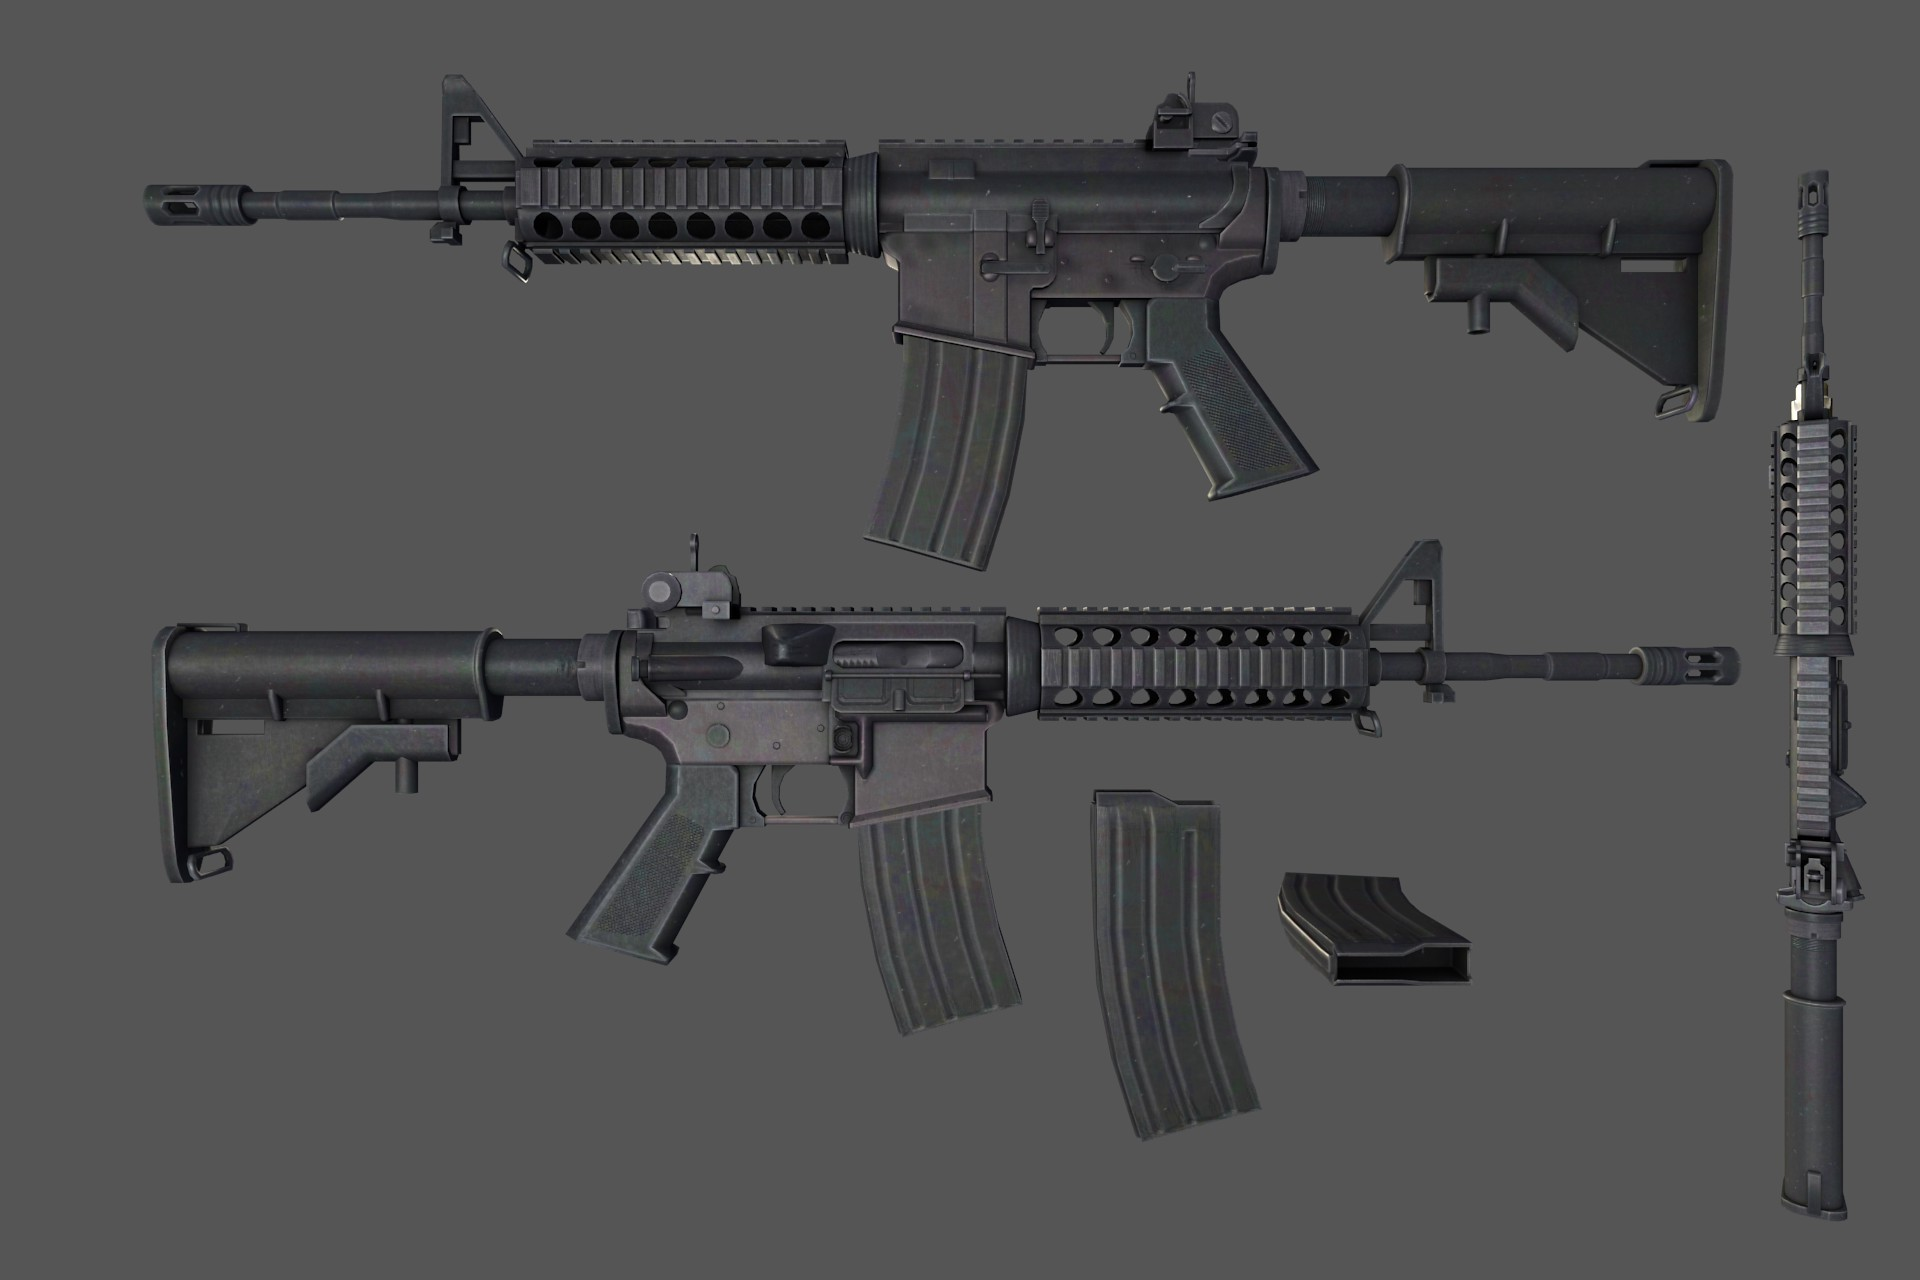 M4a1 Hd Wallpapers For Desktop Download